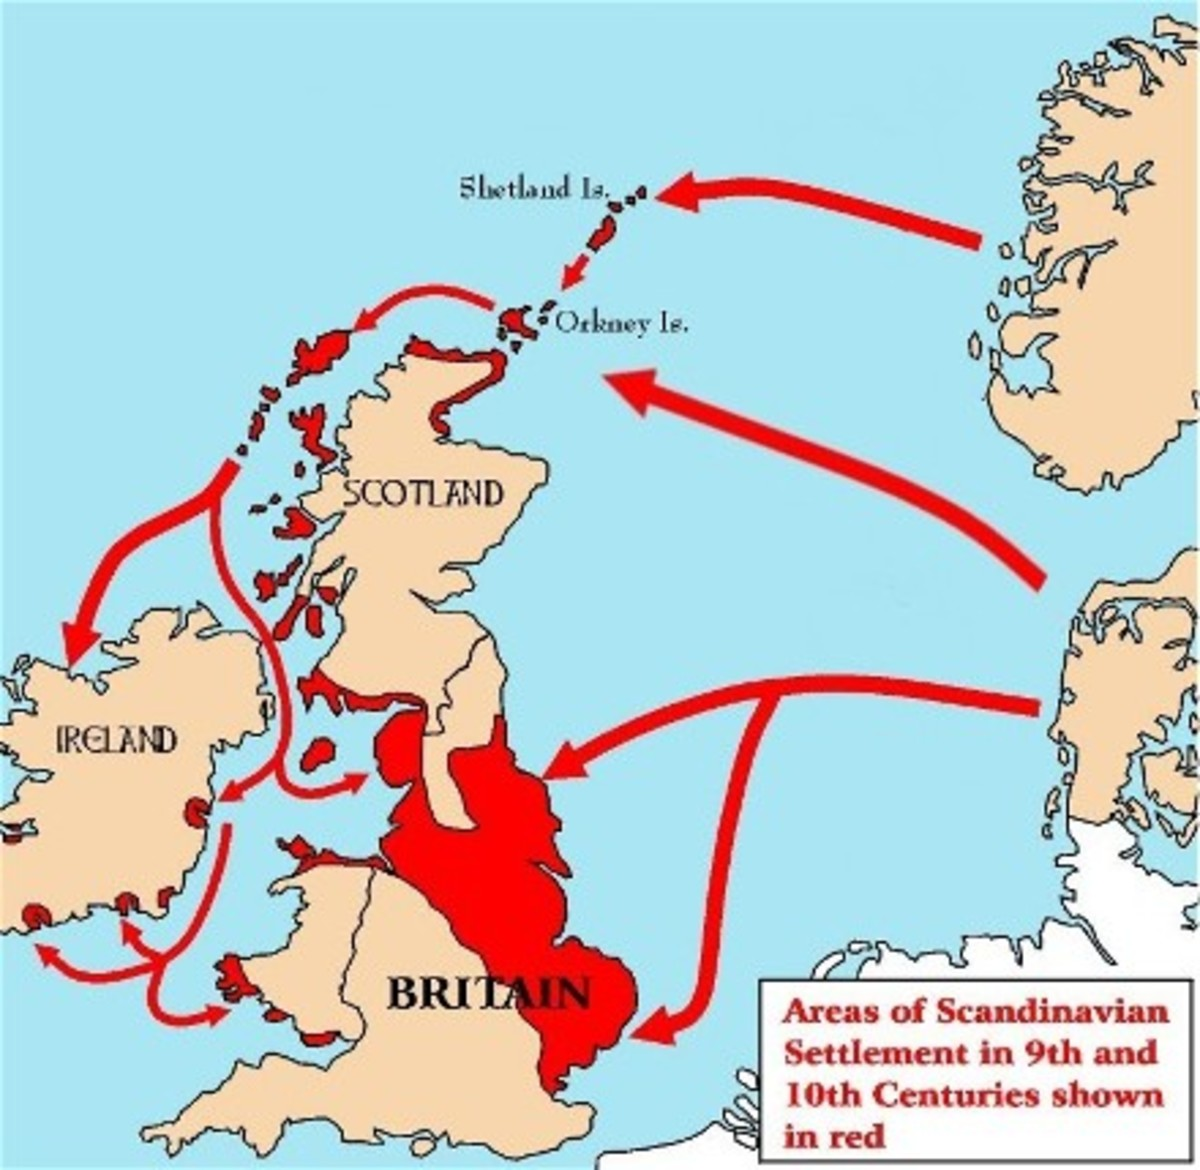 Britain and Scandinavia - before our special relationship with the US we had one with the Danes and West Norse, culminating in Knut's kingship from AD 1016 - 1035; son Harold 'Harefoot' reigned as regent, then king AD 1035 - 1041 before Harthaknut